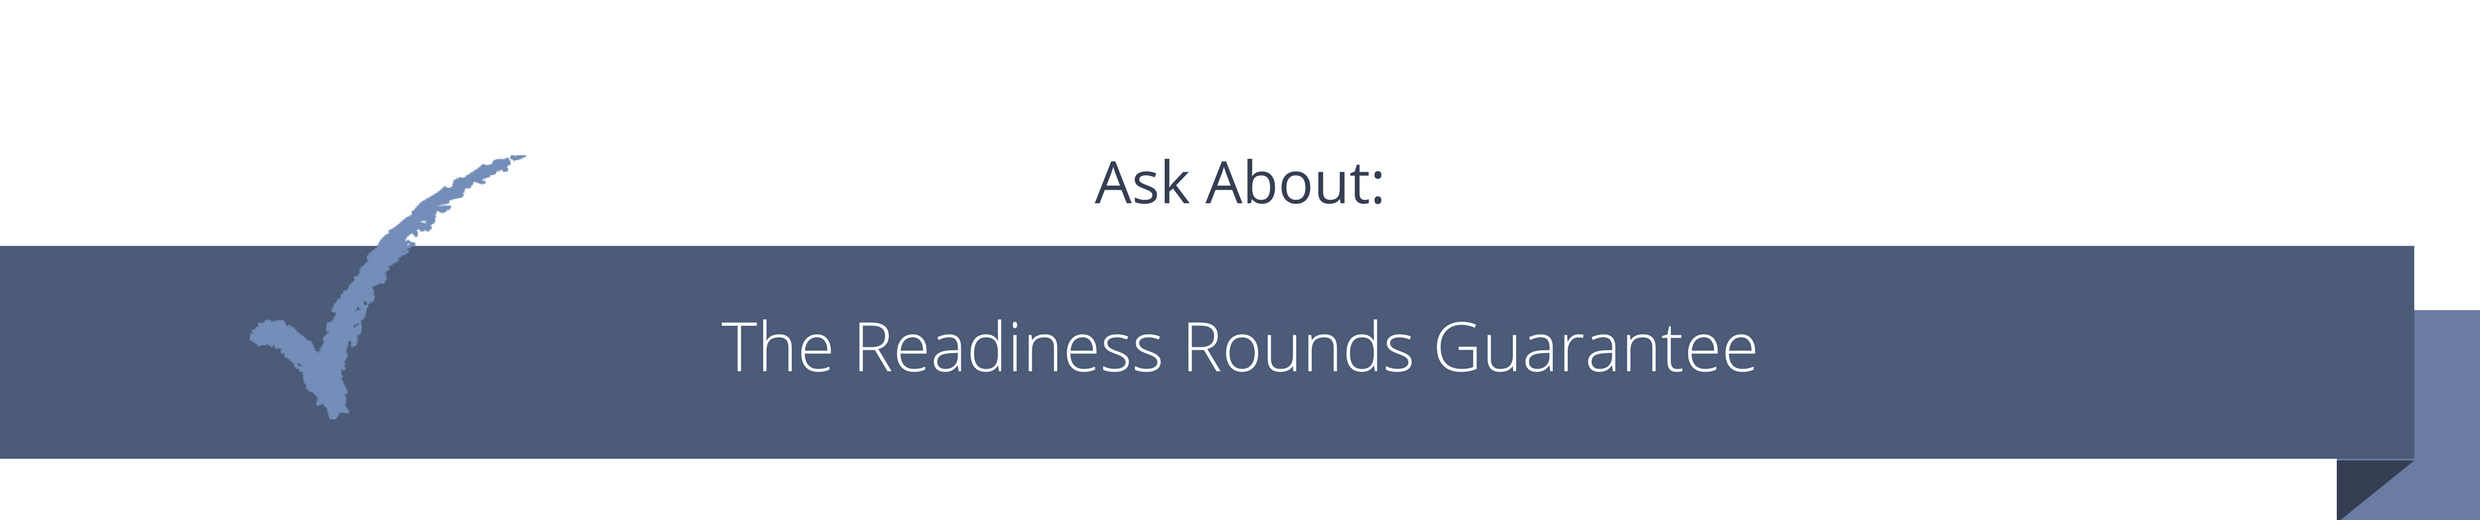 readiness rounds guarantees